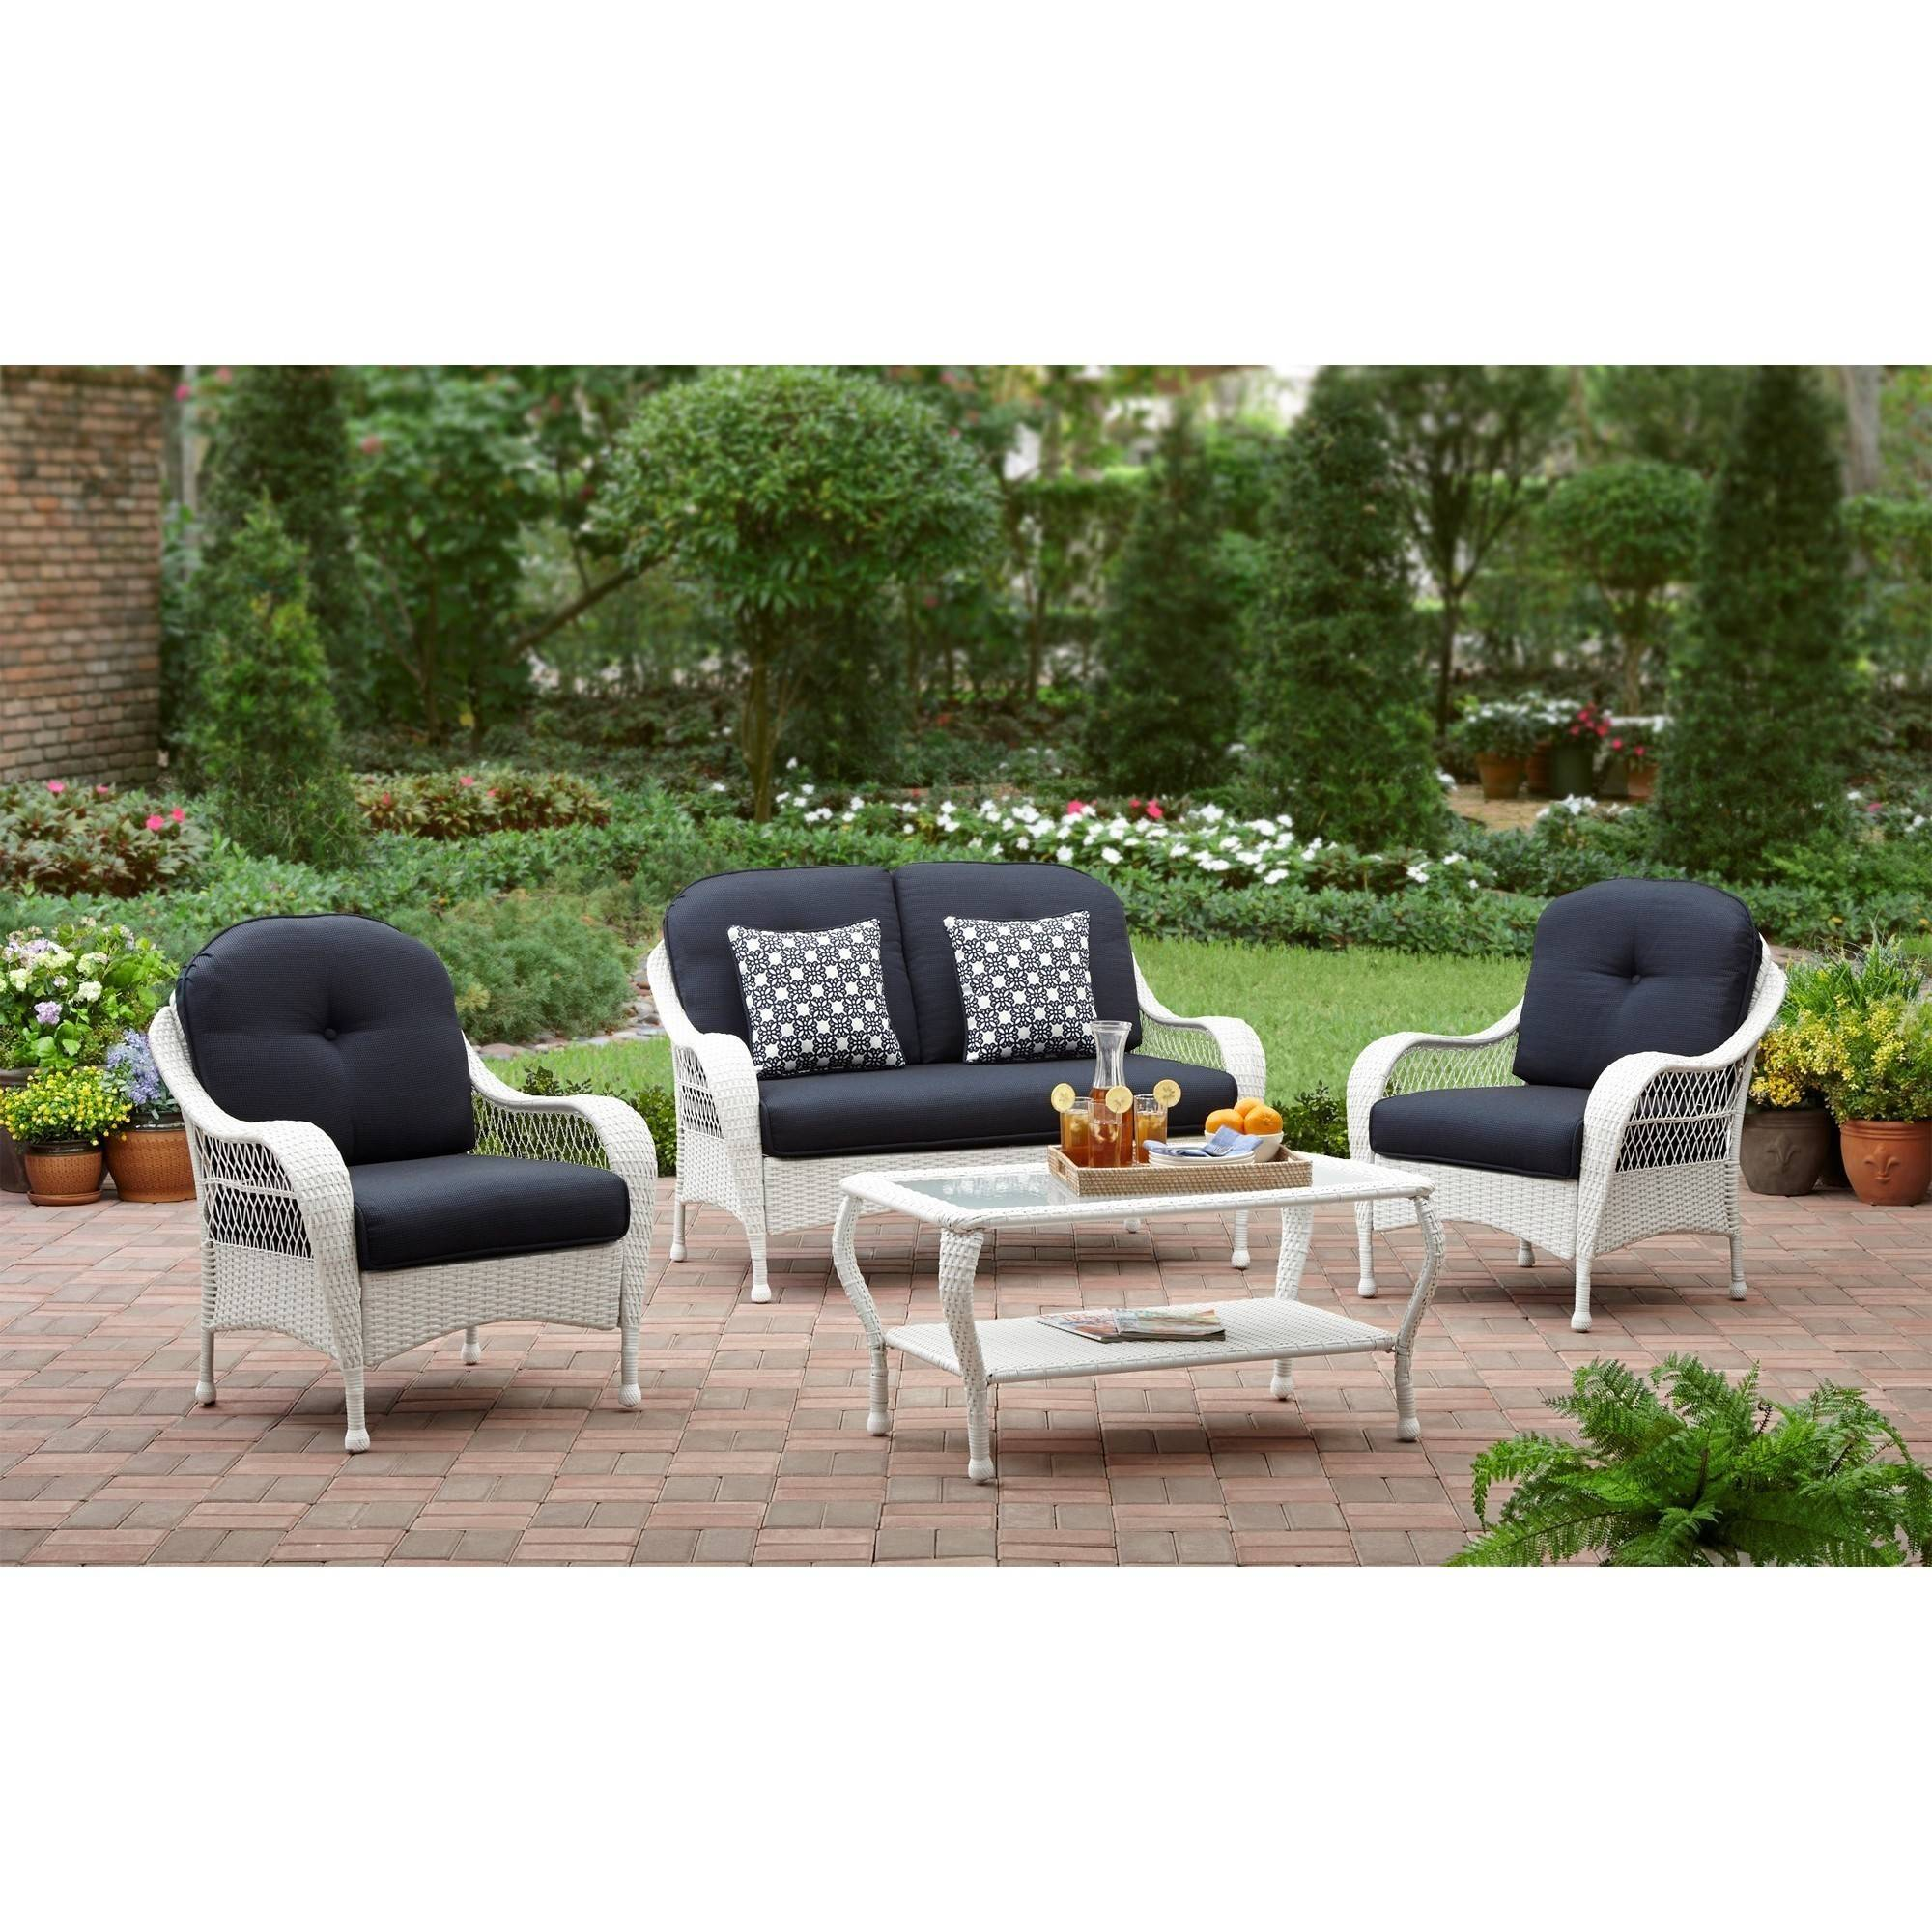 Better Homes And Gardens Azalea Ridge 4 Piece Patio Conversation Set,  White, Seats